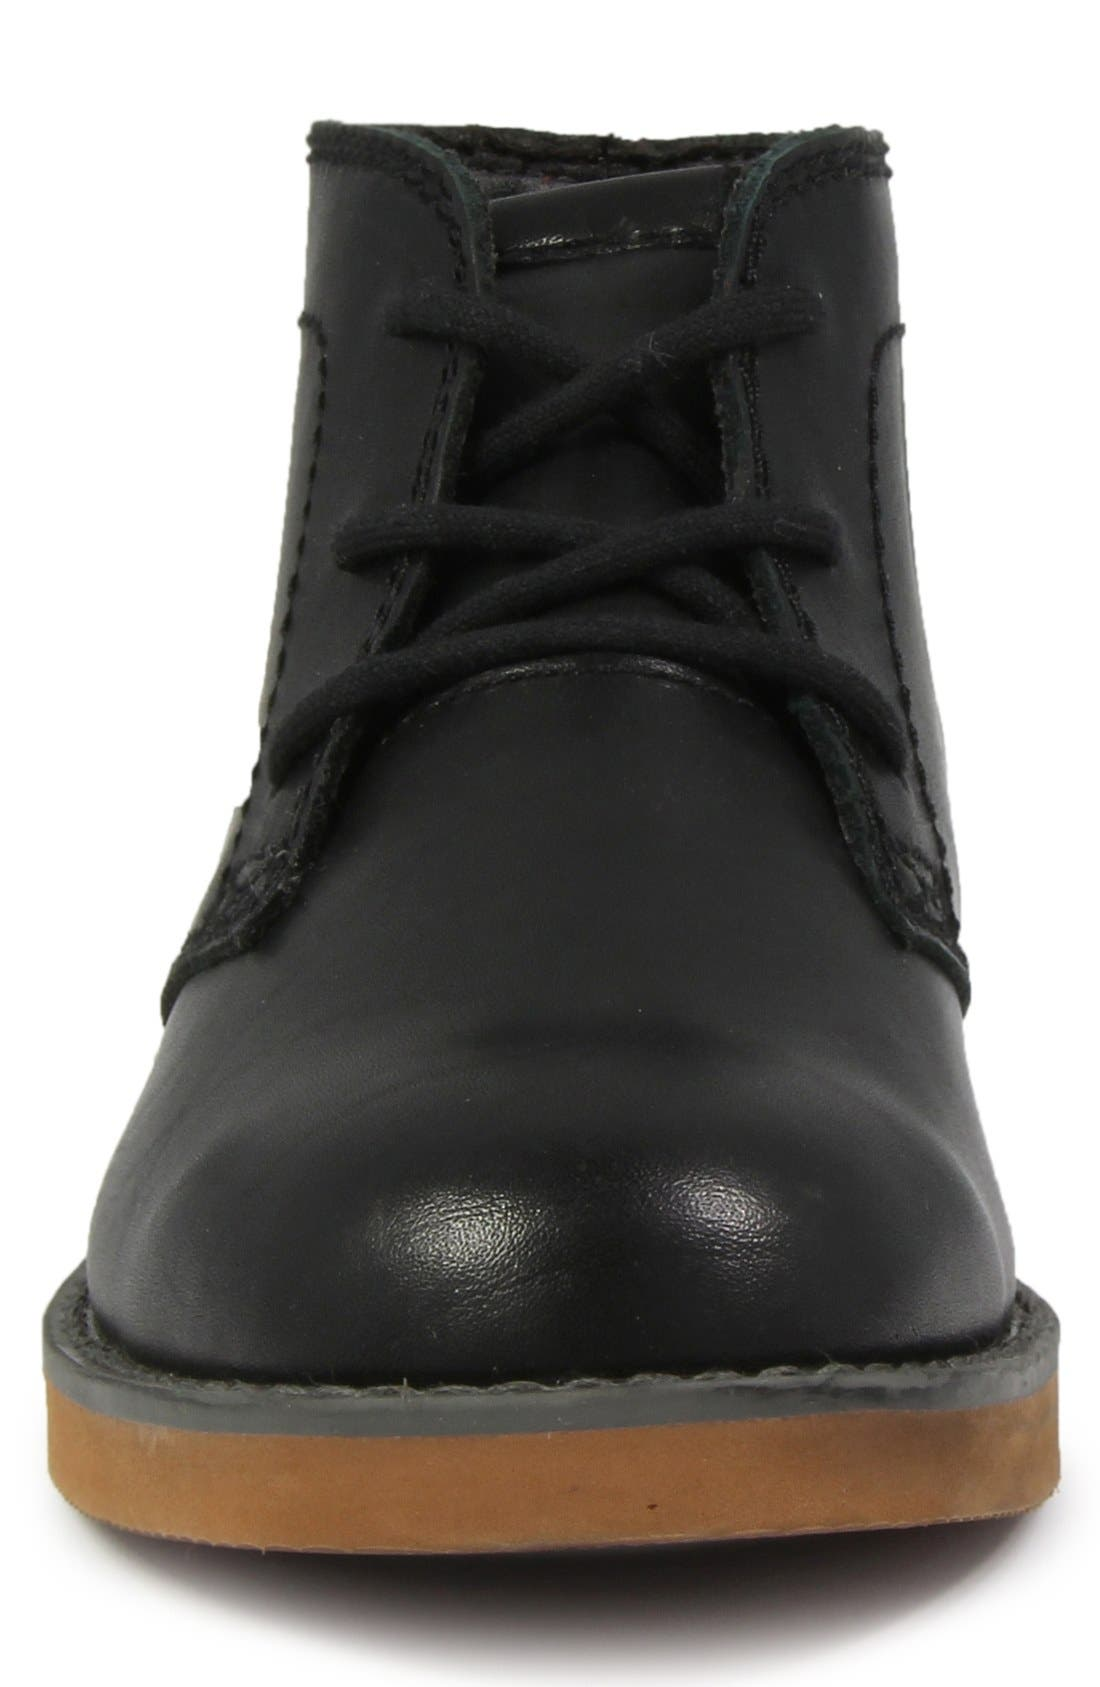 'Bucktown' Chukka Boot,                             Alternate thumbnail 2, color,                             Black Smooth With Brick Sole